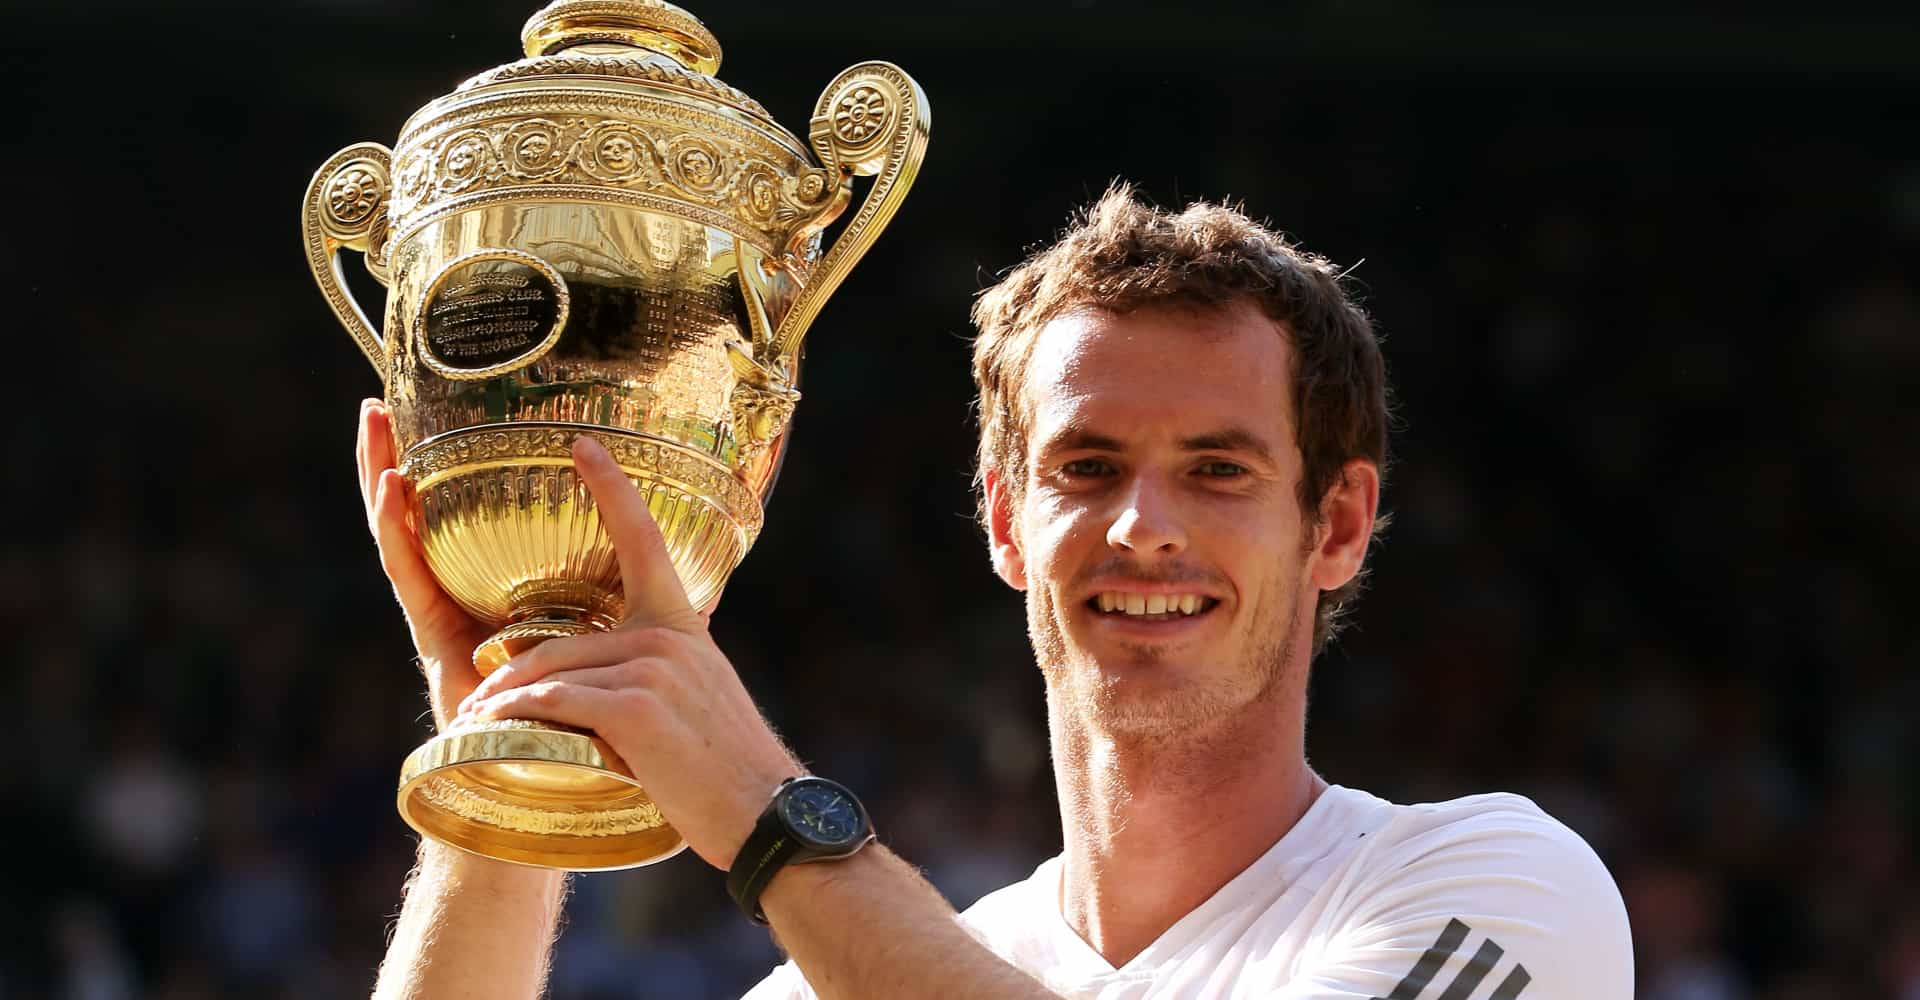 The most memorable moments in Wimbledon history